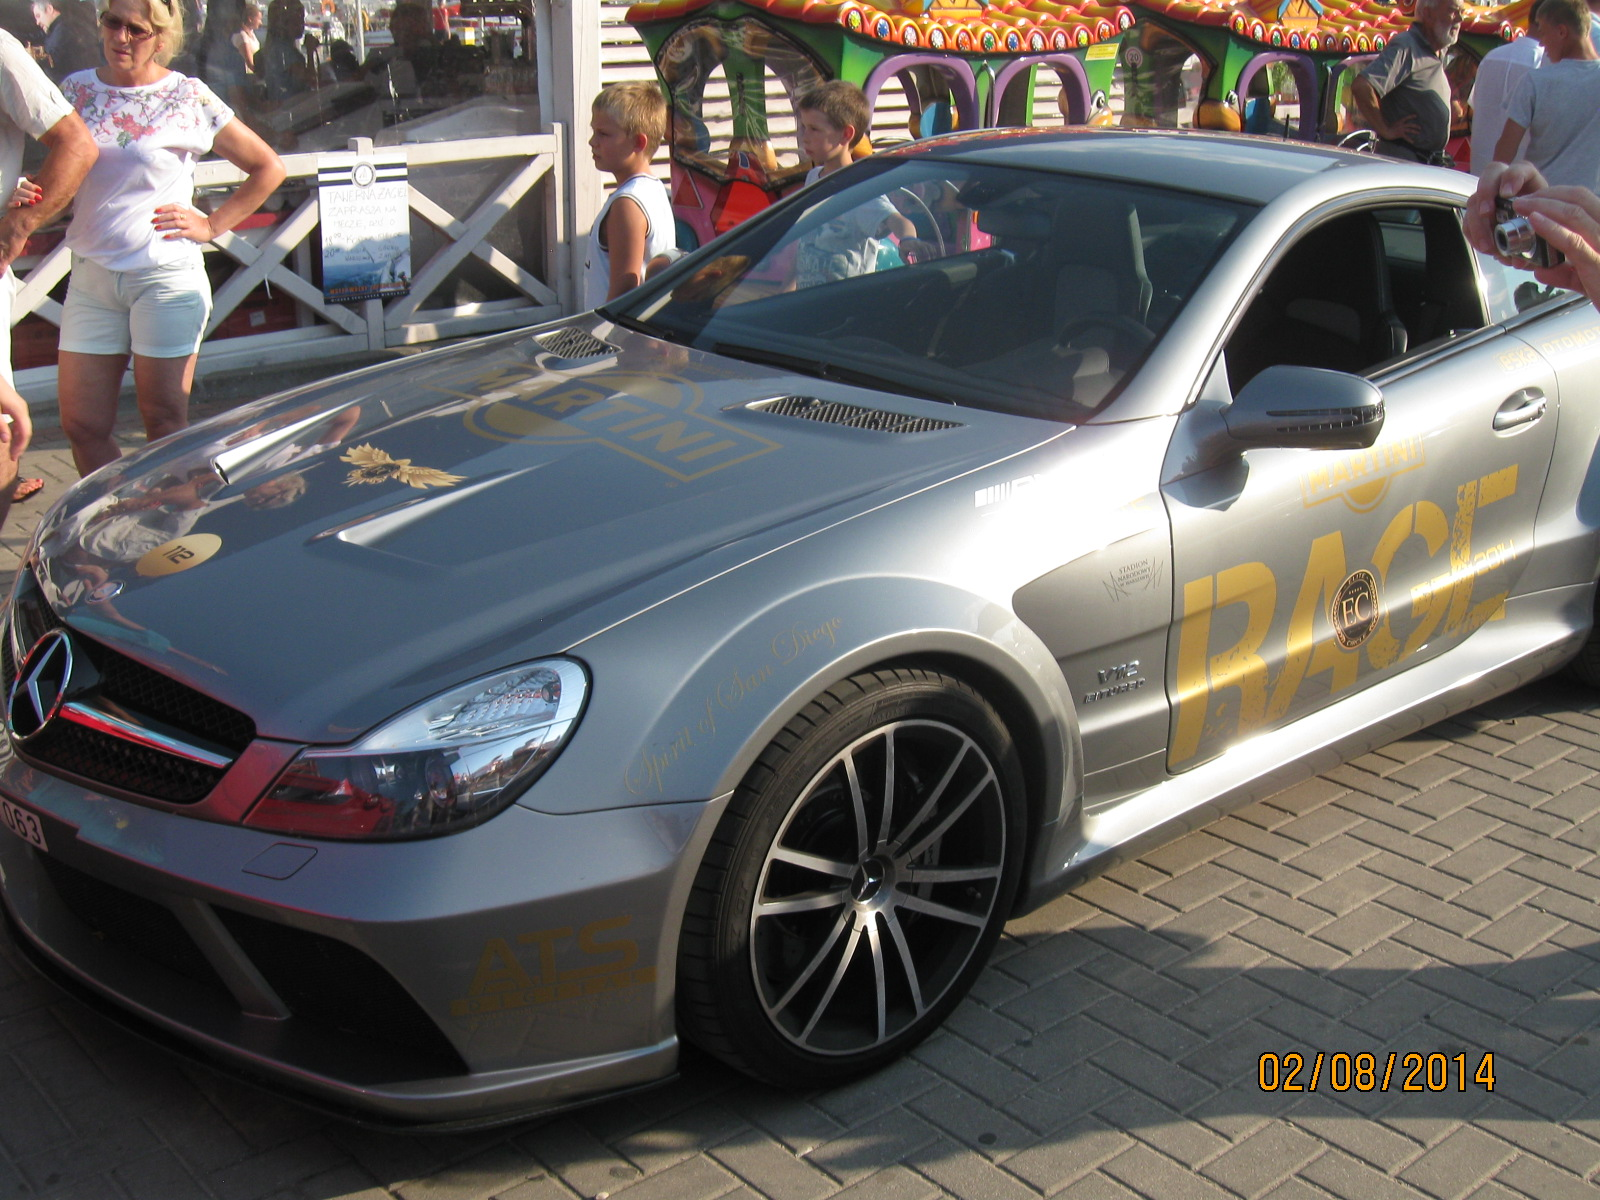 http://124coupe.pl/hosting/images/img2900.jpg